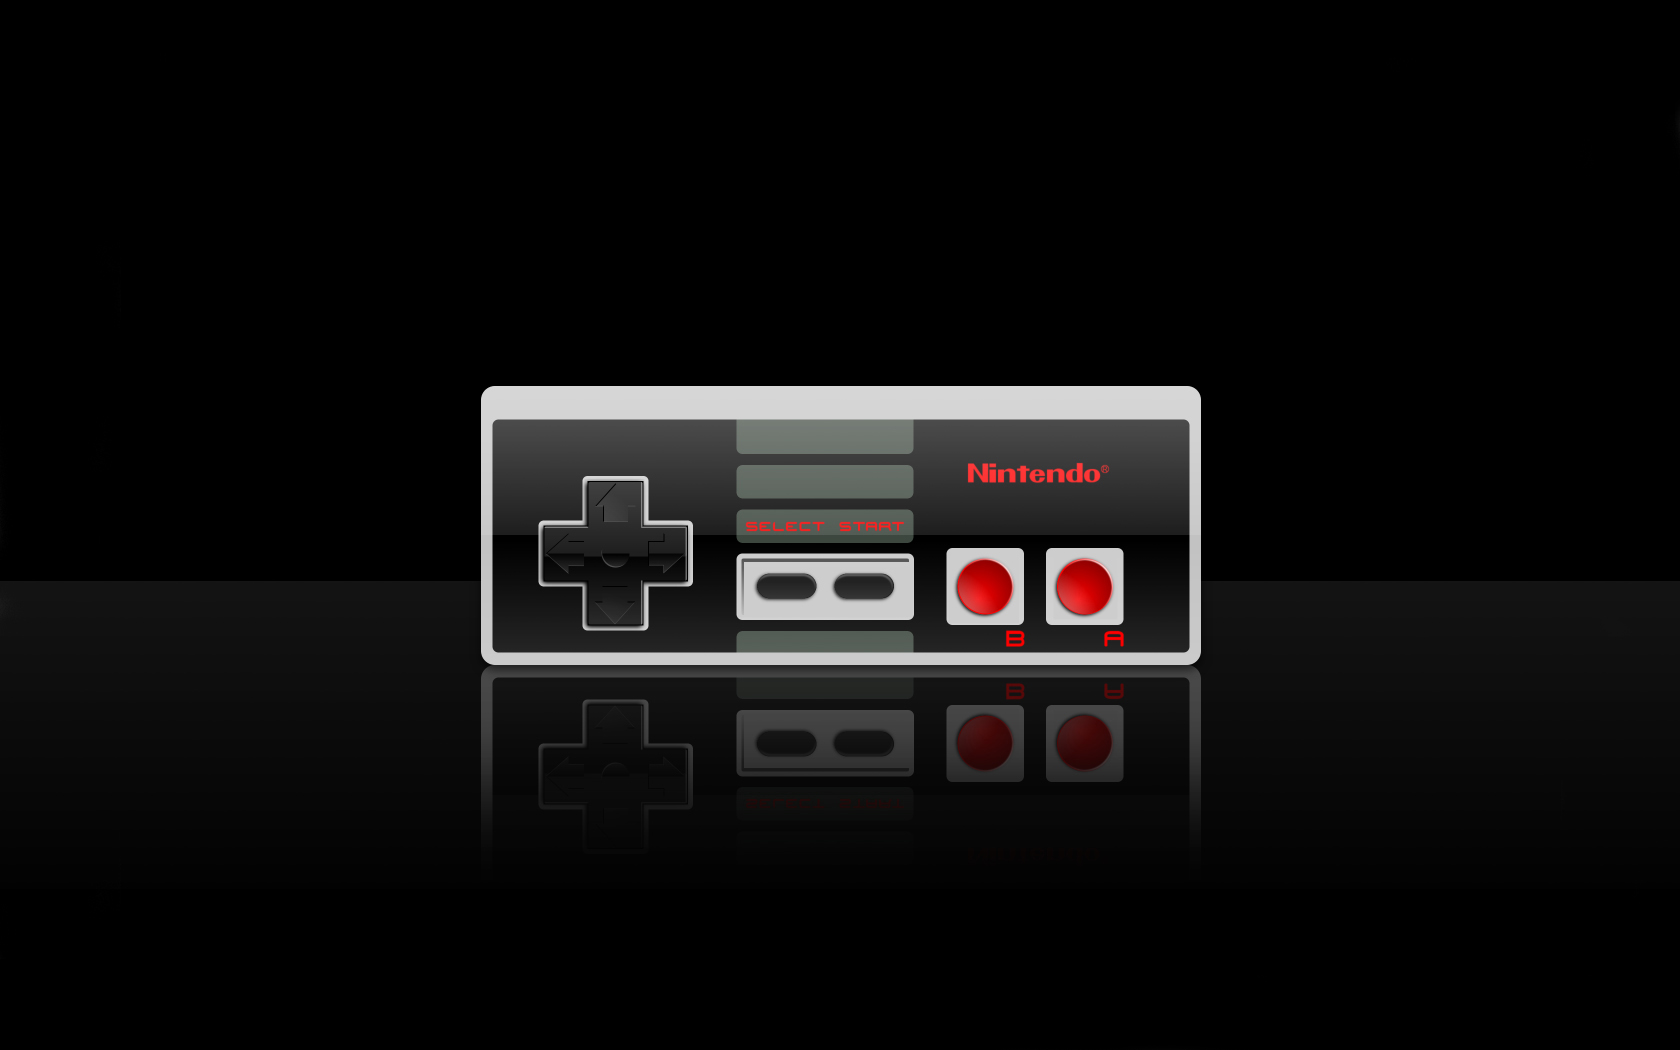 retro game console wallpaper - photo #47